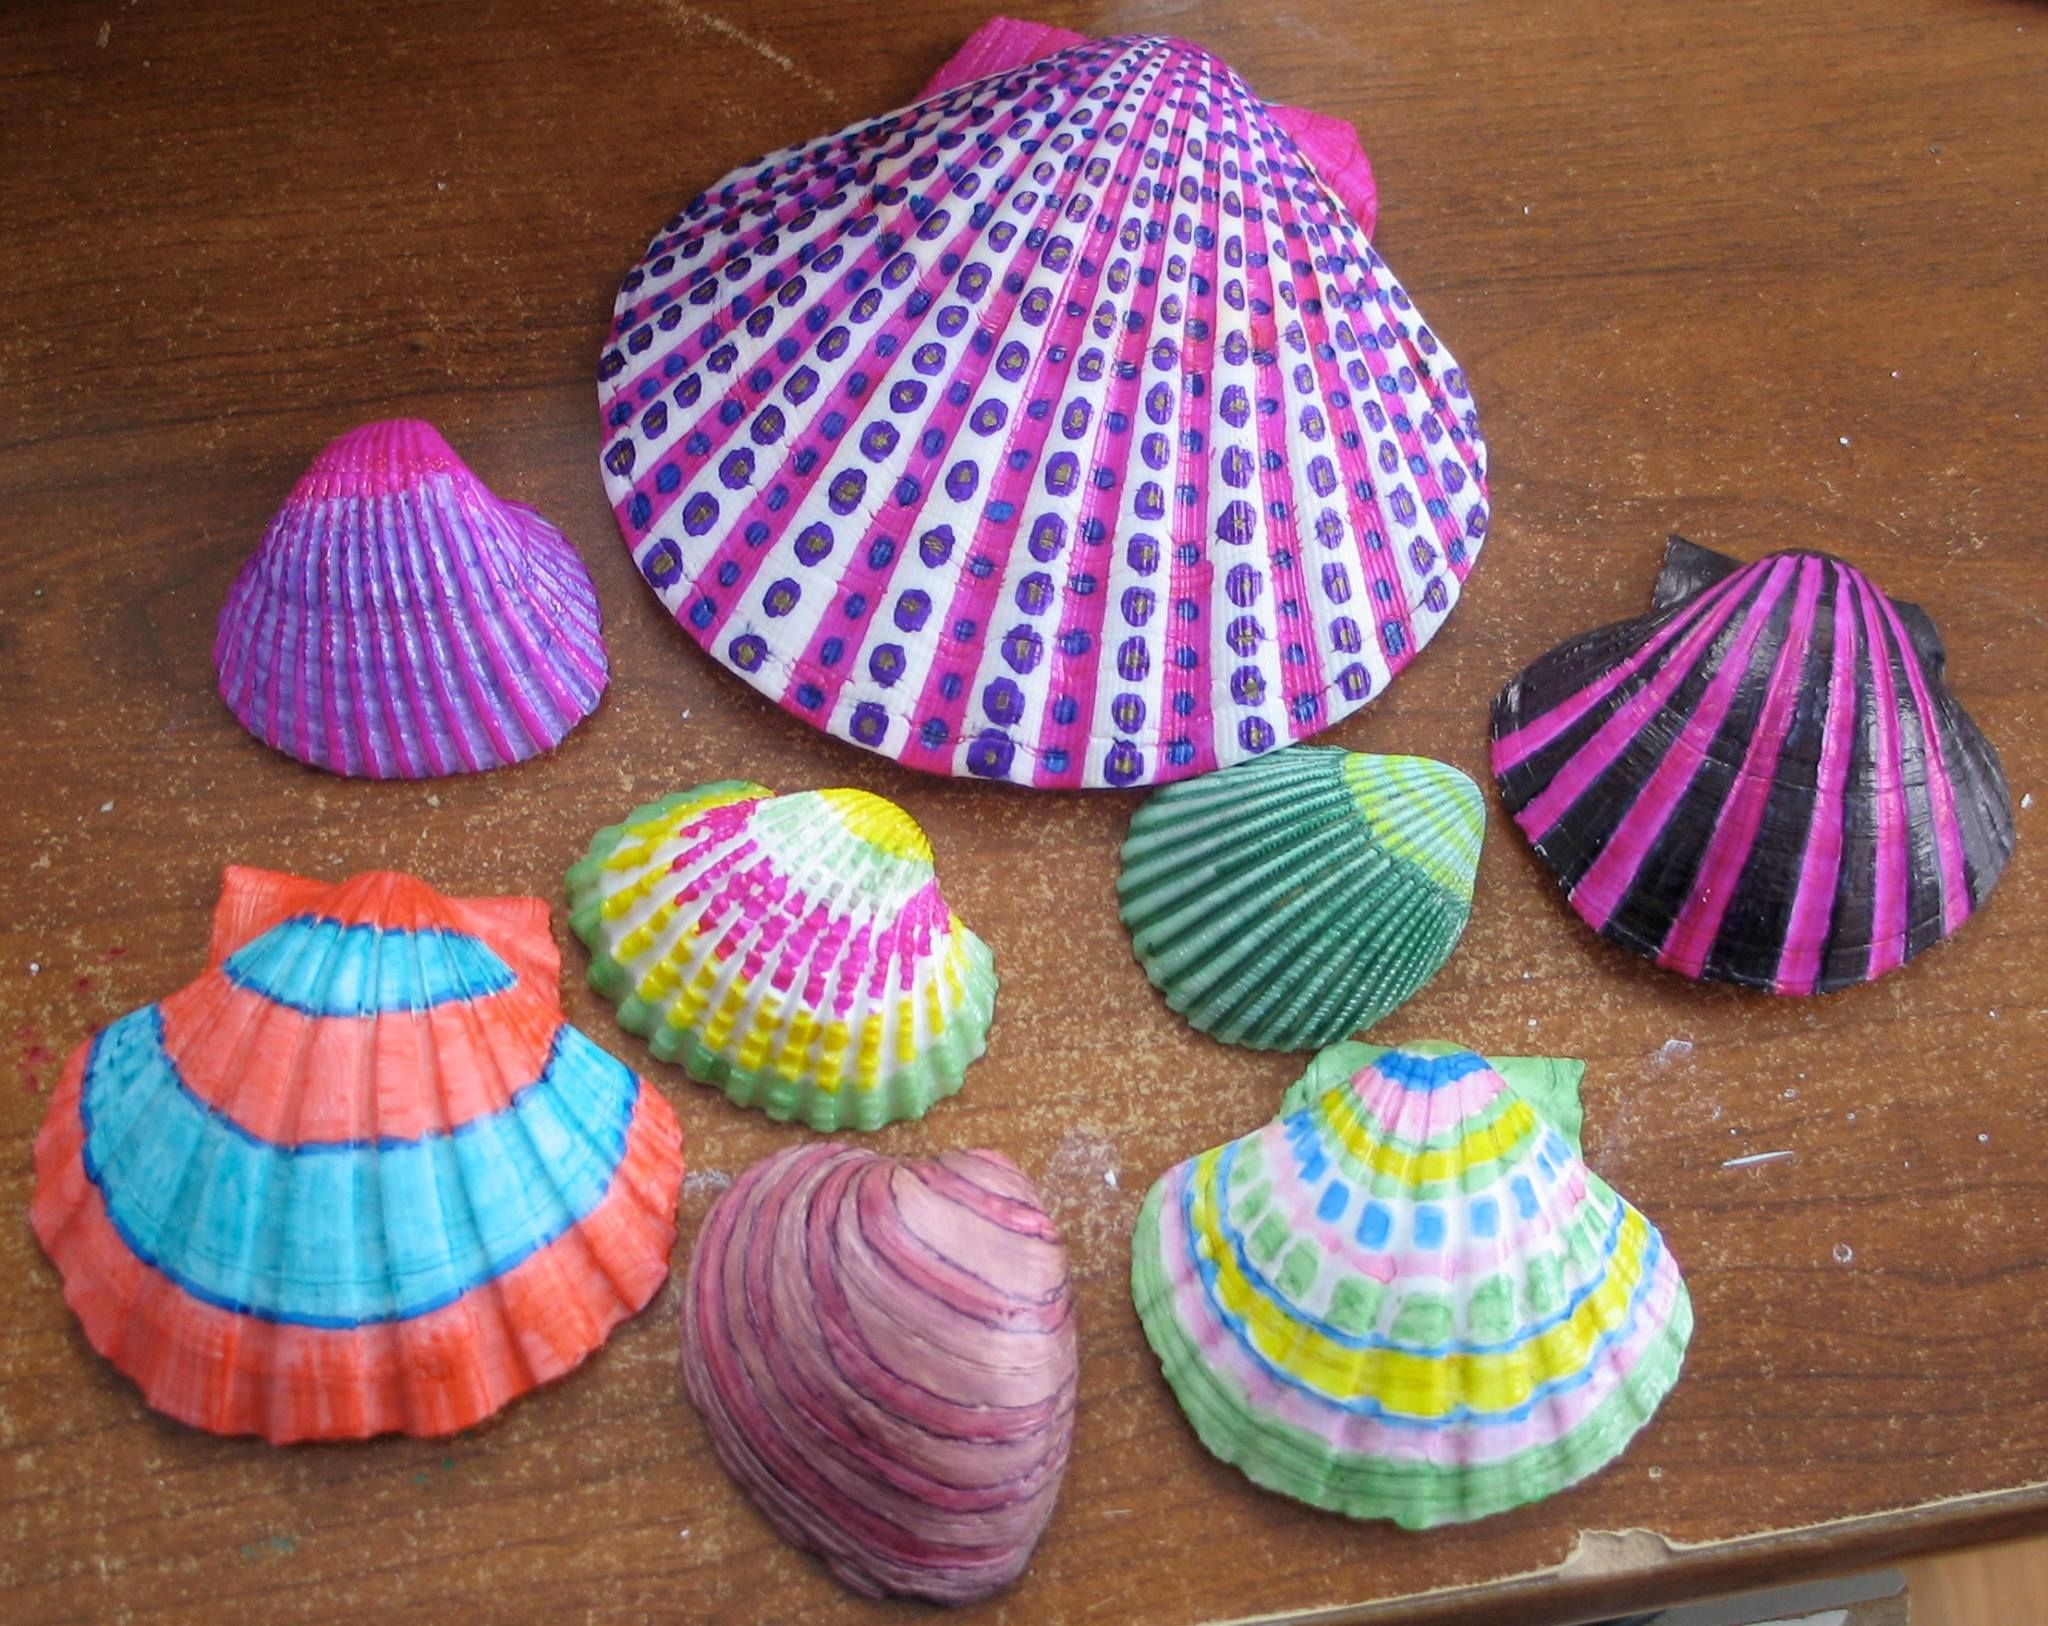 More shells i painted with sharpie pens seashell crafts for Sea shell crafts